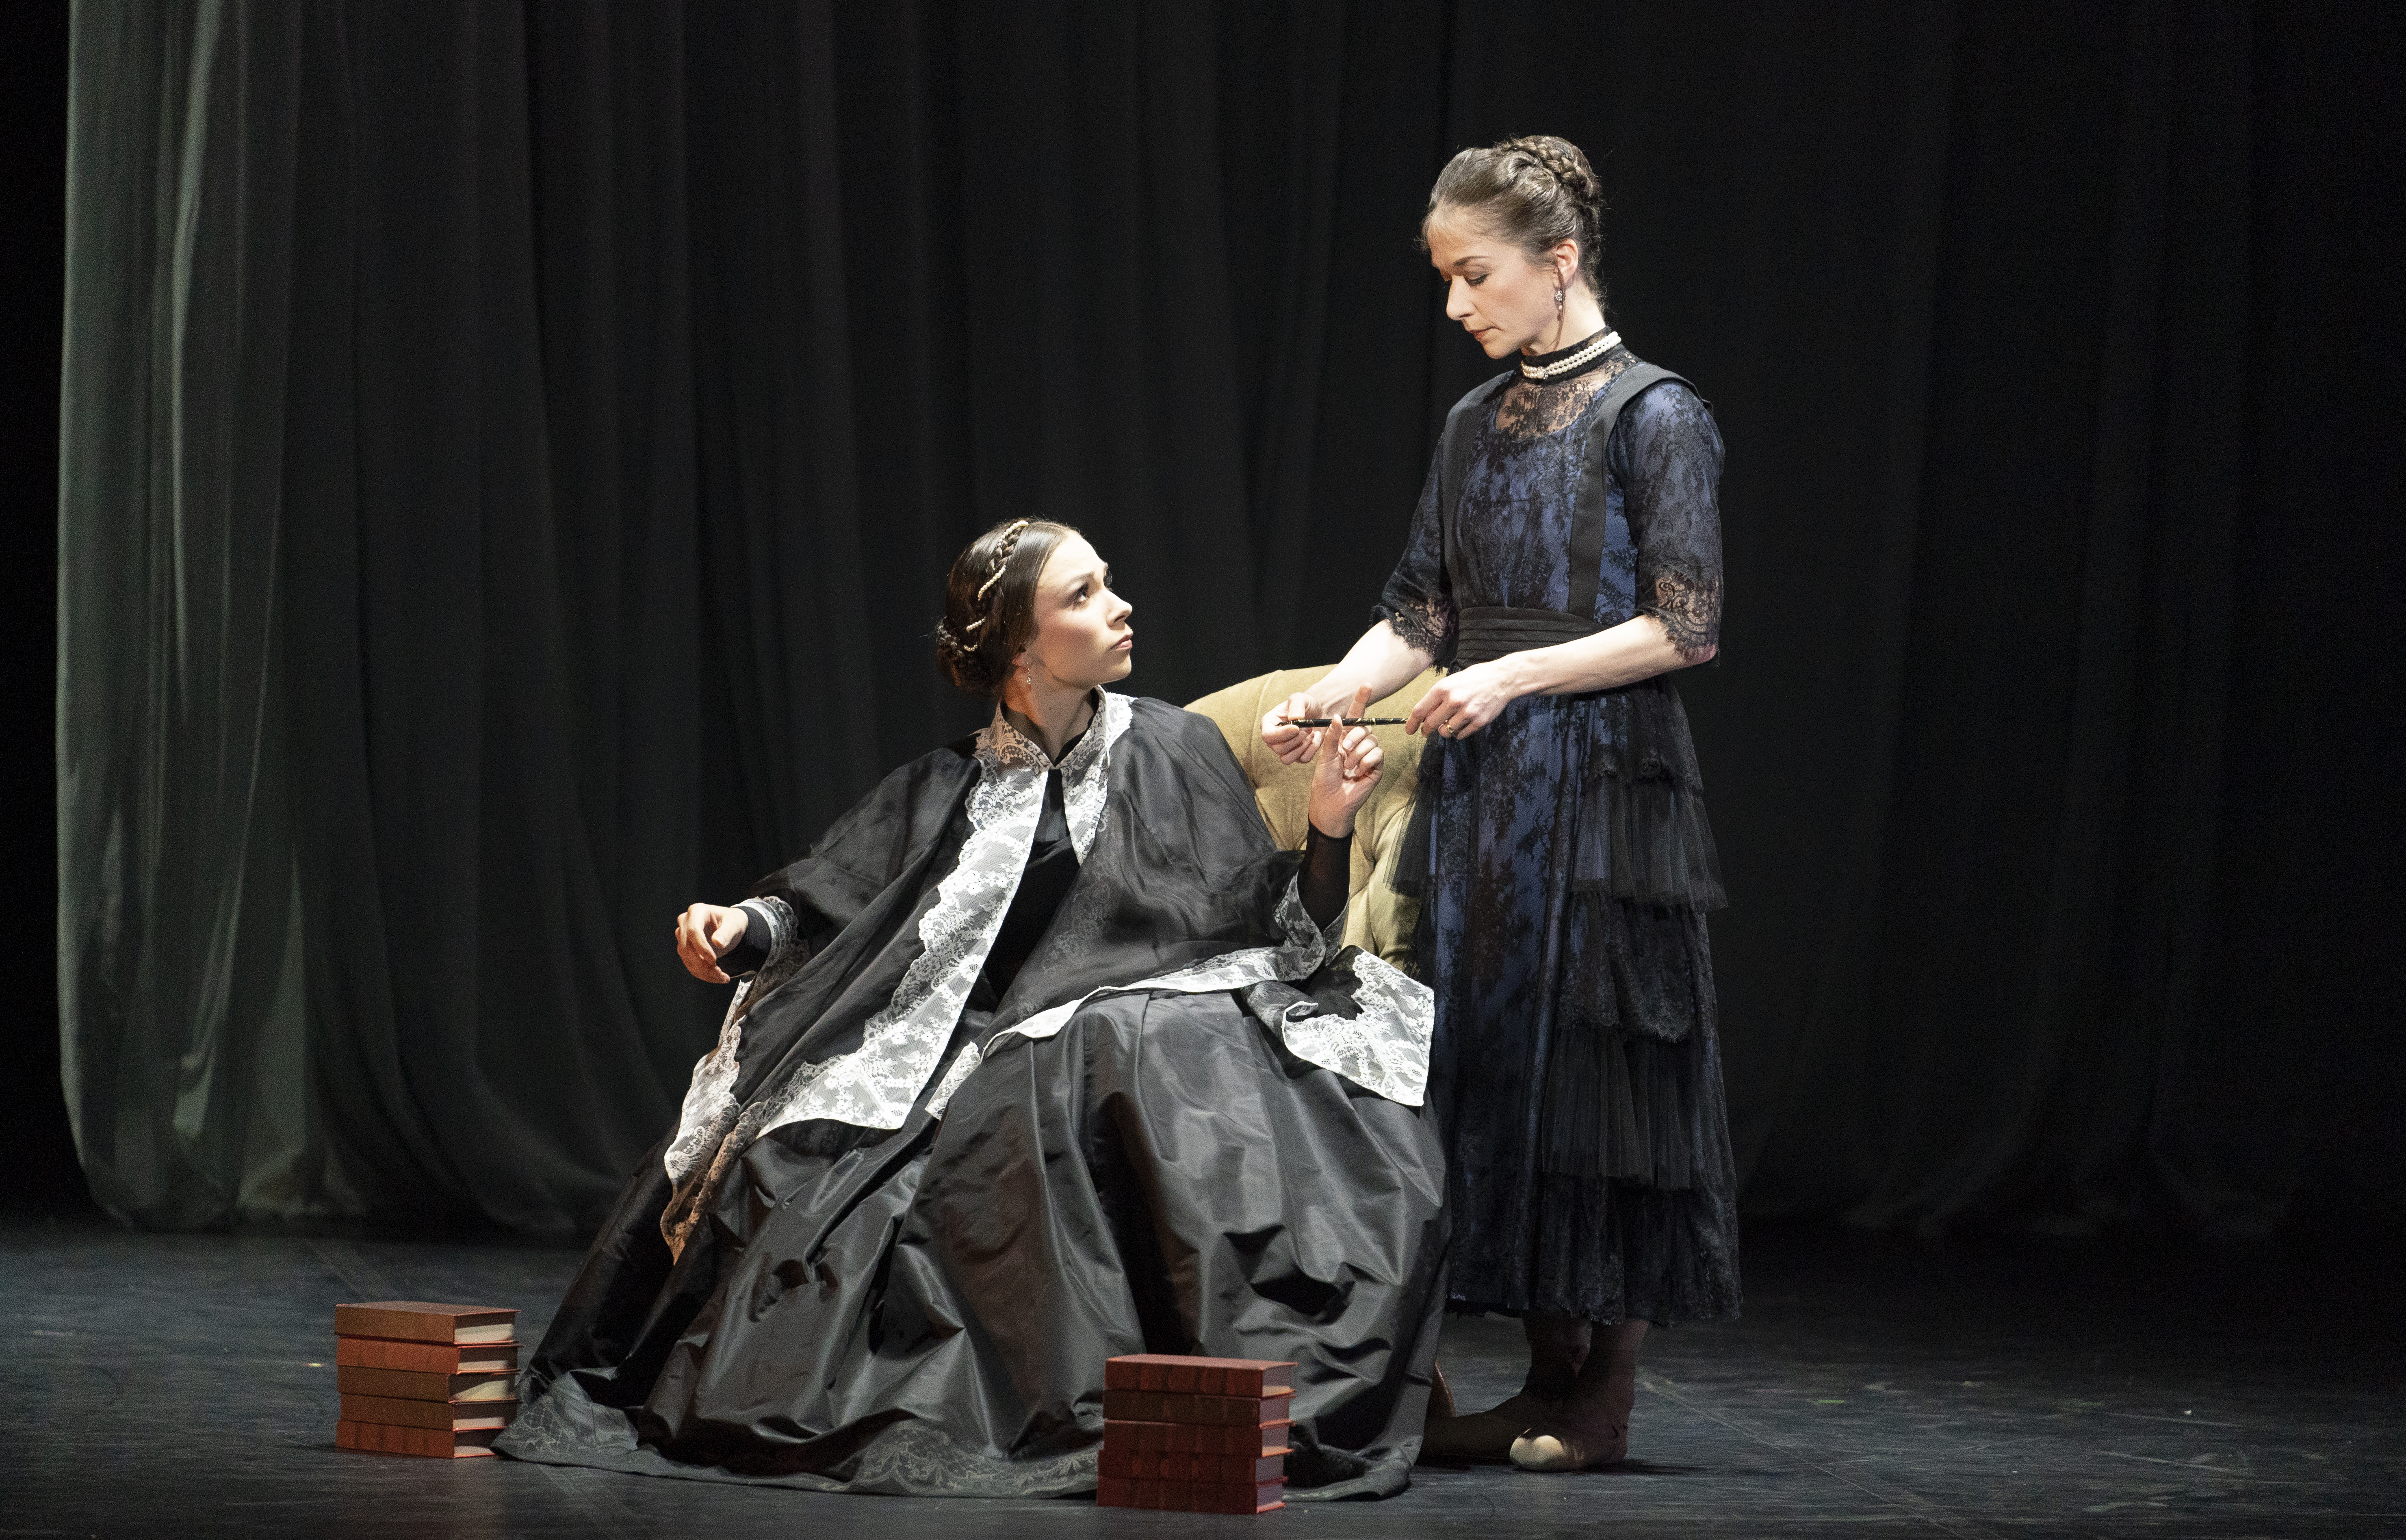 Abigail Prudames as Victoria and Pippa Moore as Older Princess Beatrice in Northern Ballet's 'Victoria'.